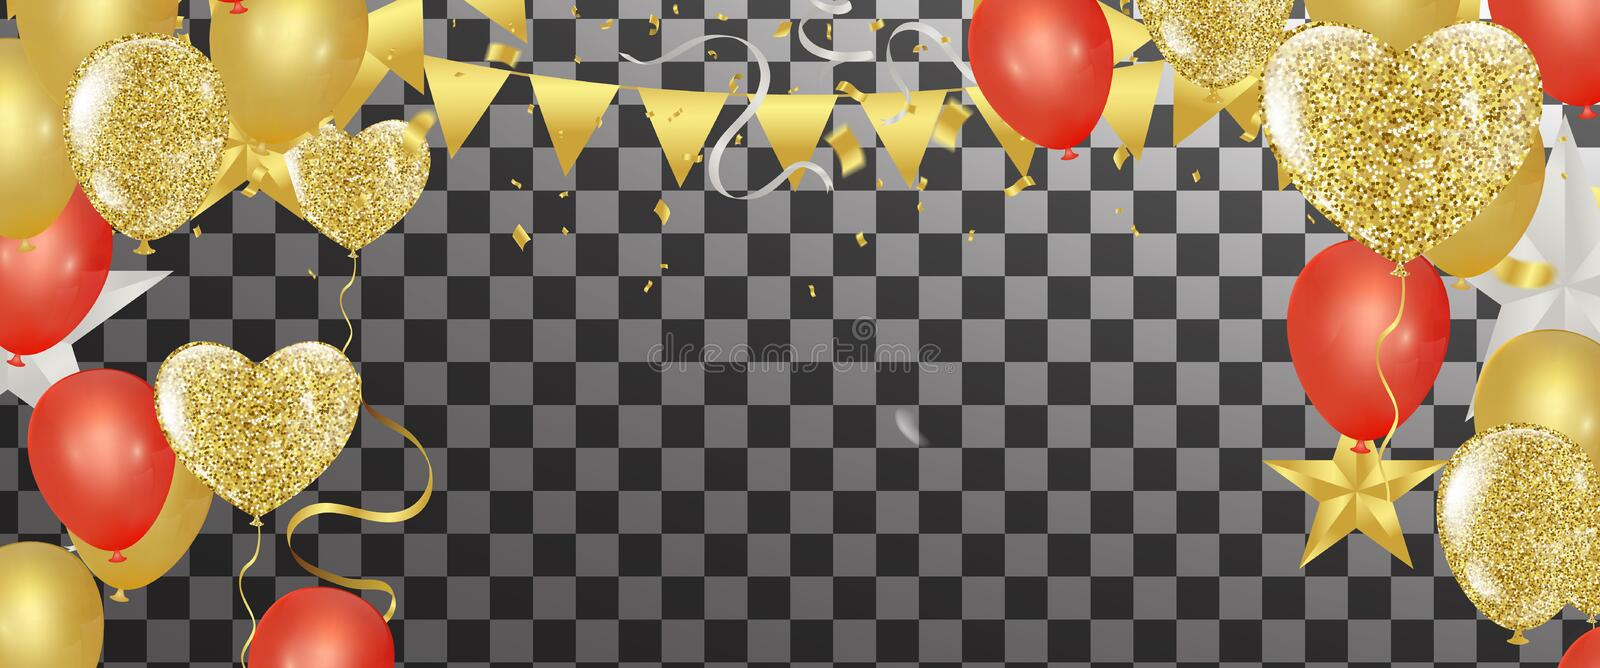 Gold confetti celebration party banner with Gold balloons background anniversary graduation retirement holiday stock illustration